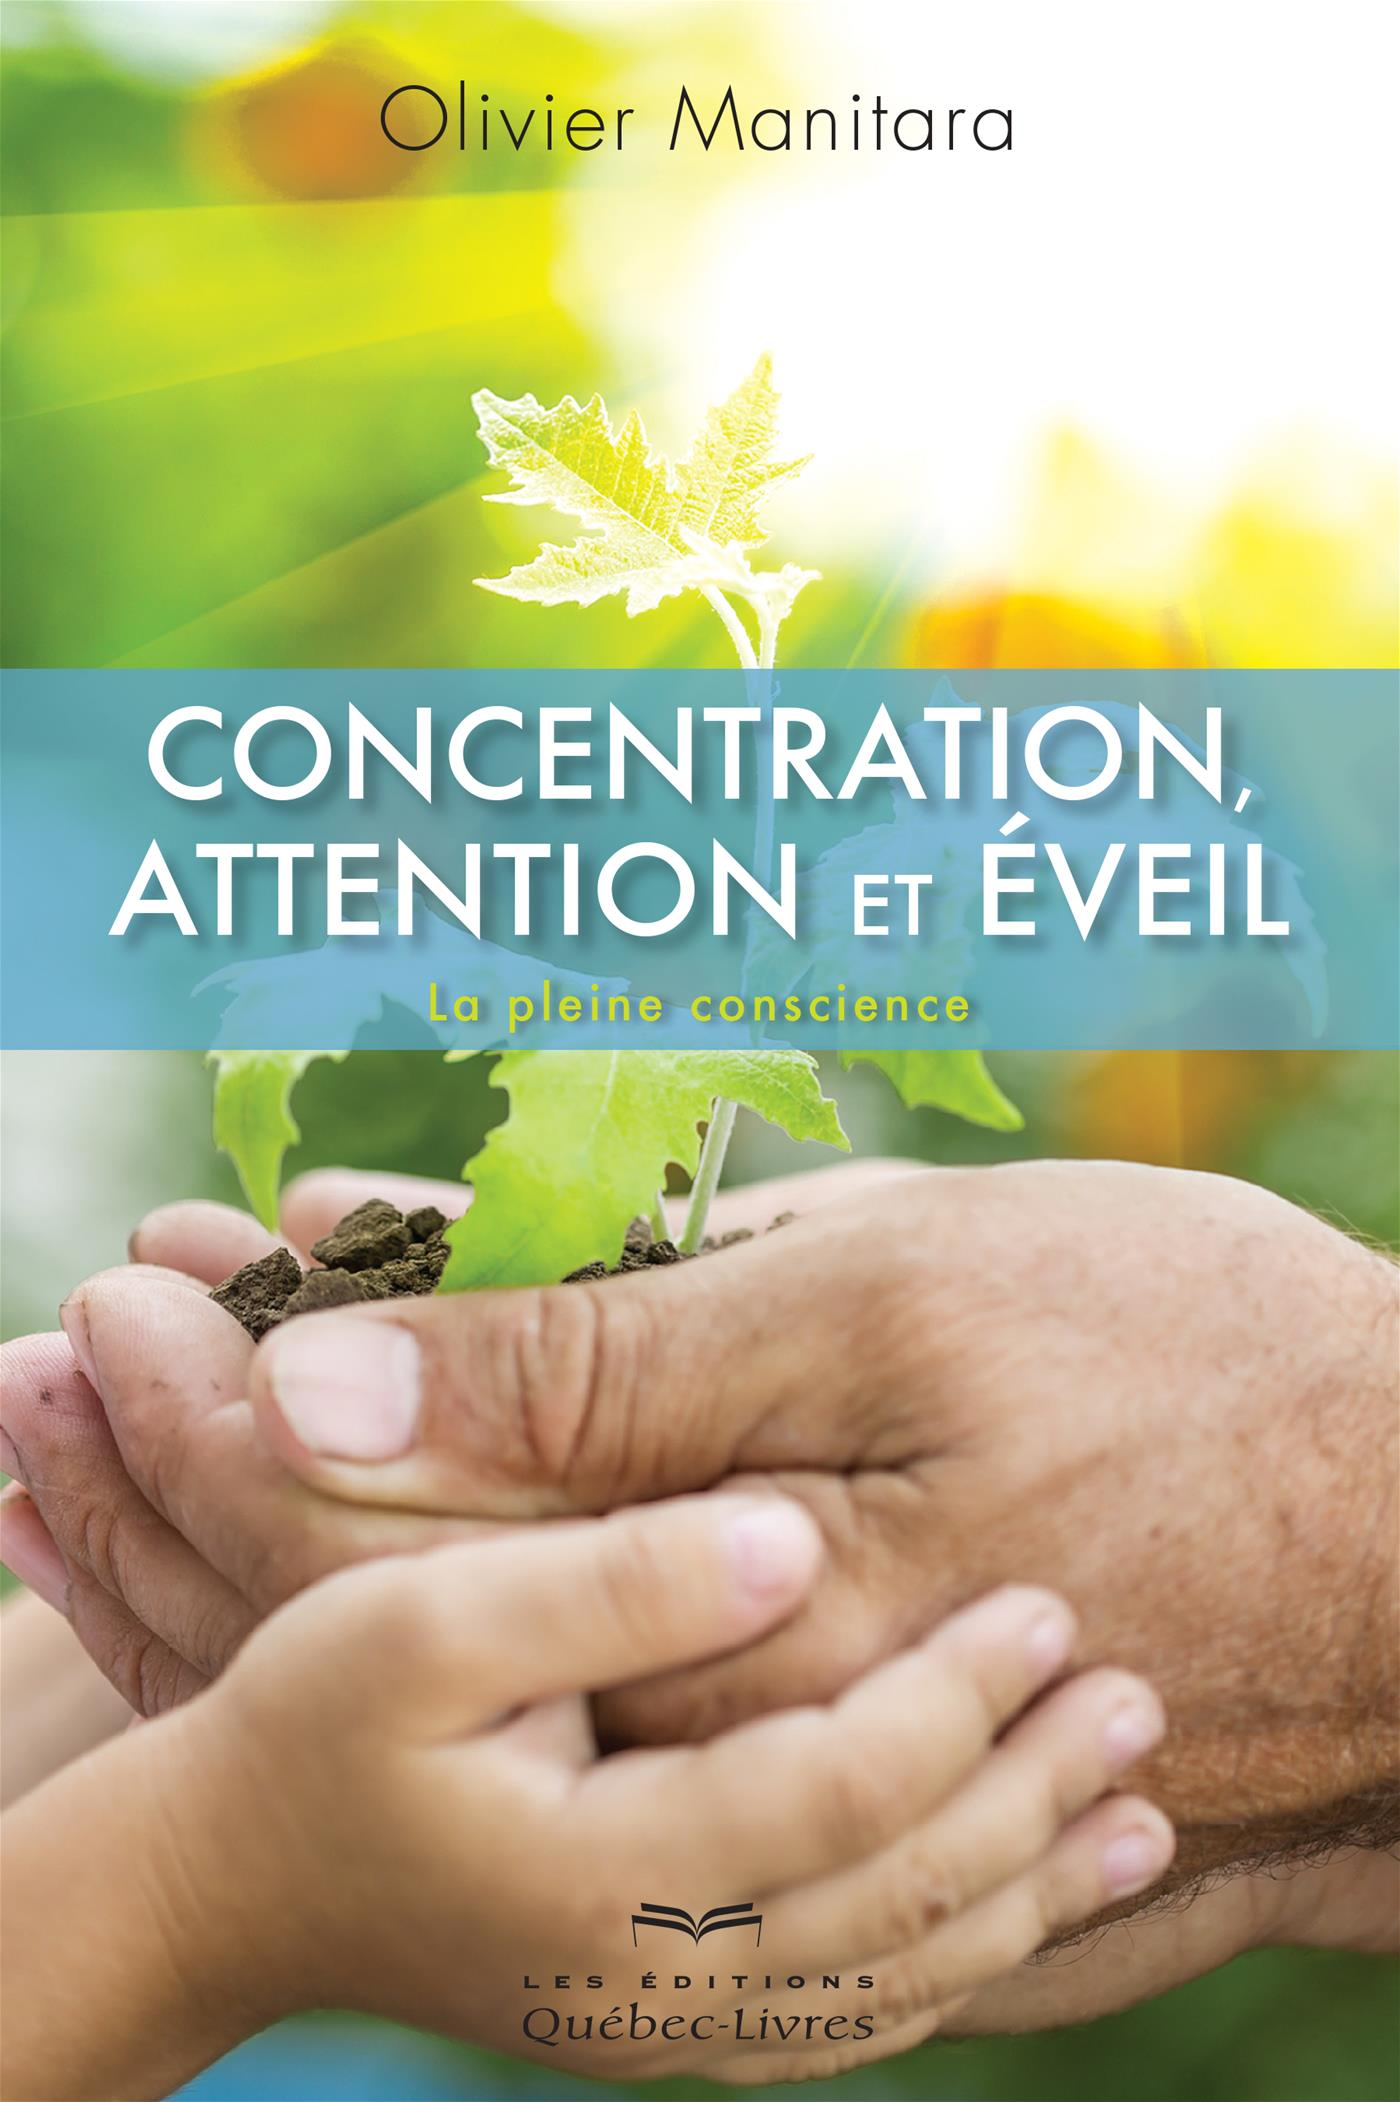 Concentration, attention et éveil